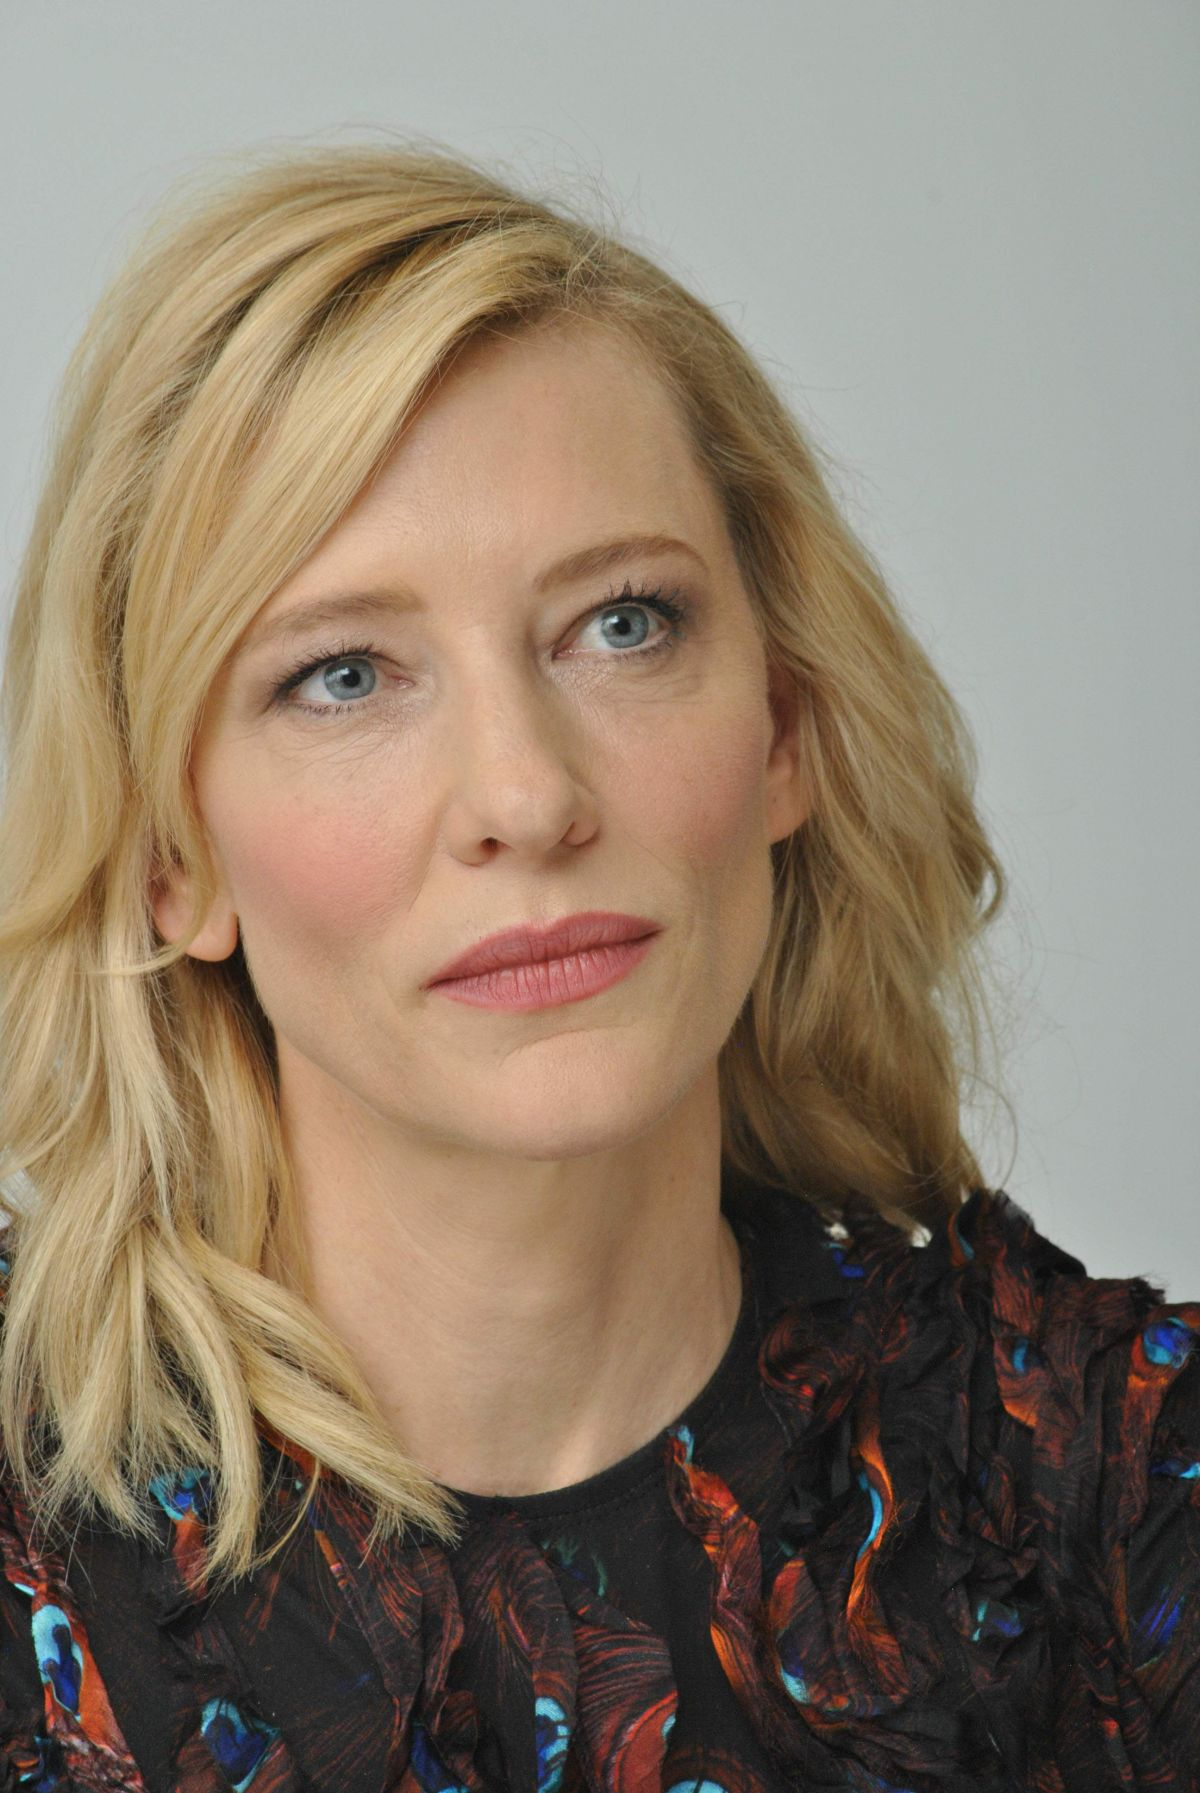 CATE BLANCHETT at Truth Press Conference in New York ... Cate Blanchett